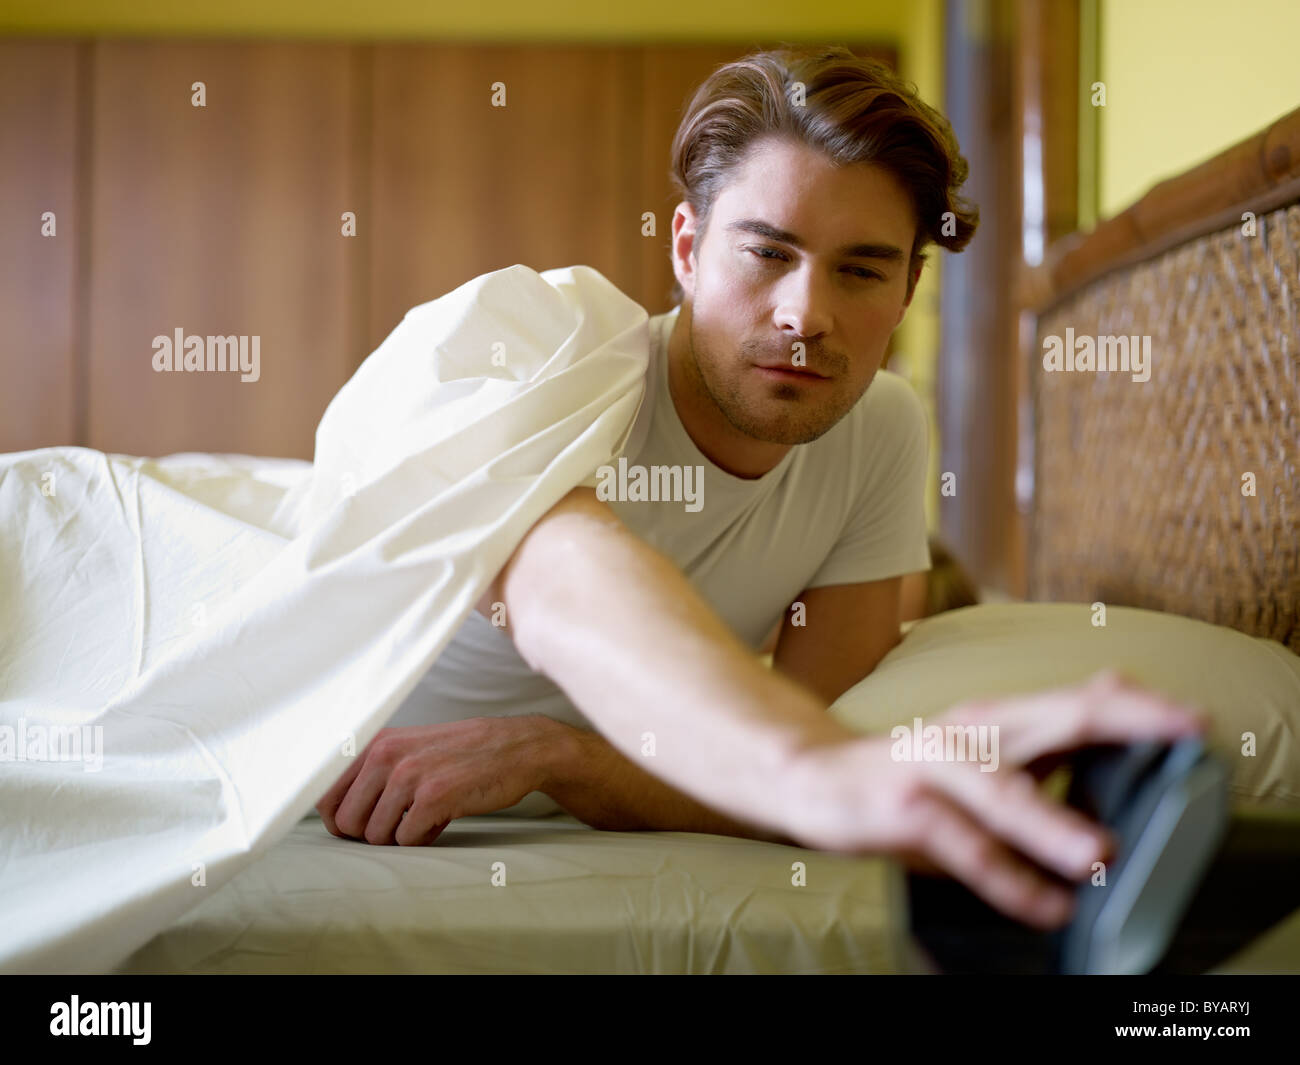 caucasian adult man in bed snoozing alarm clock and waking up. Horizontal shape, waist up, front view - Stock Image